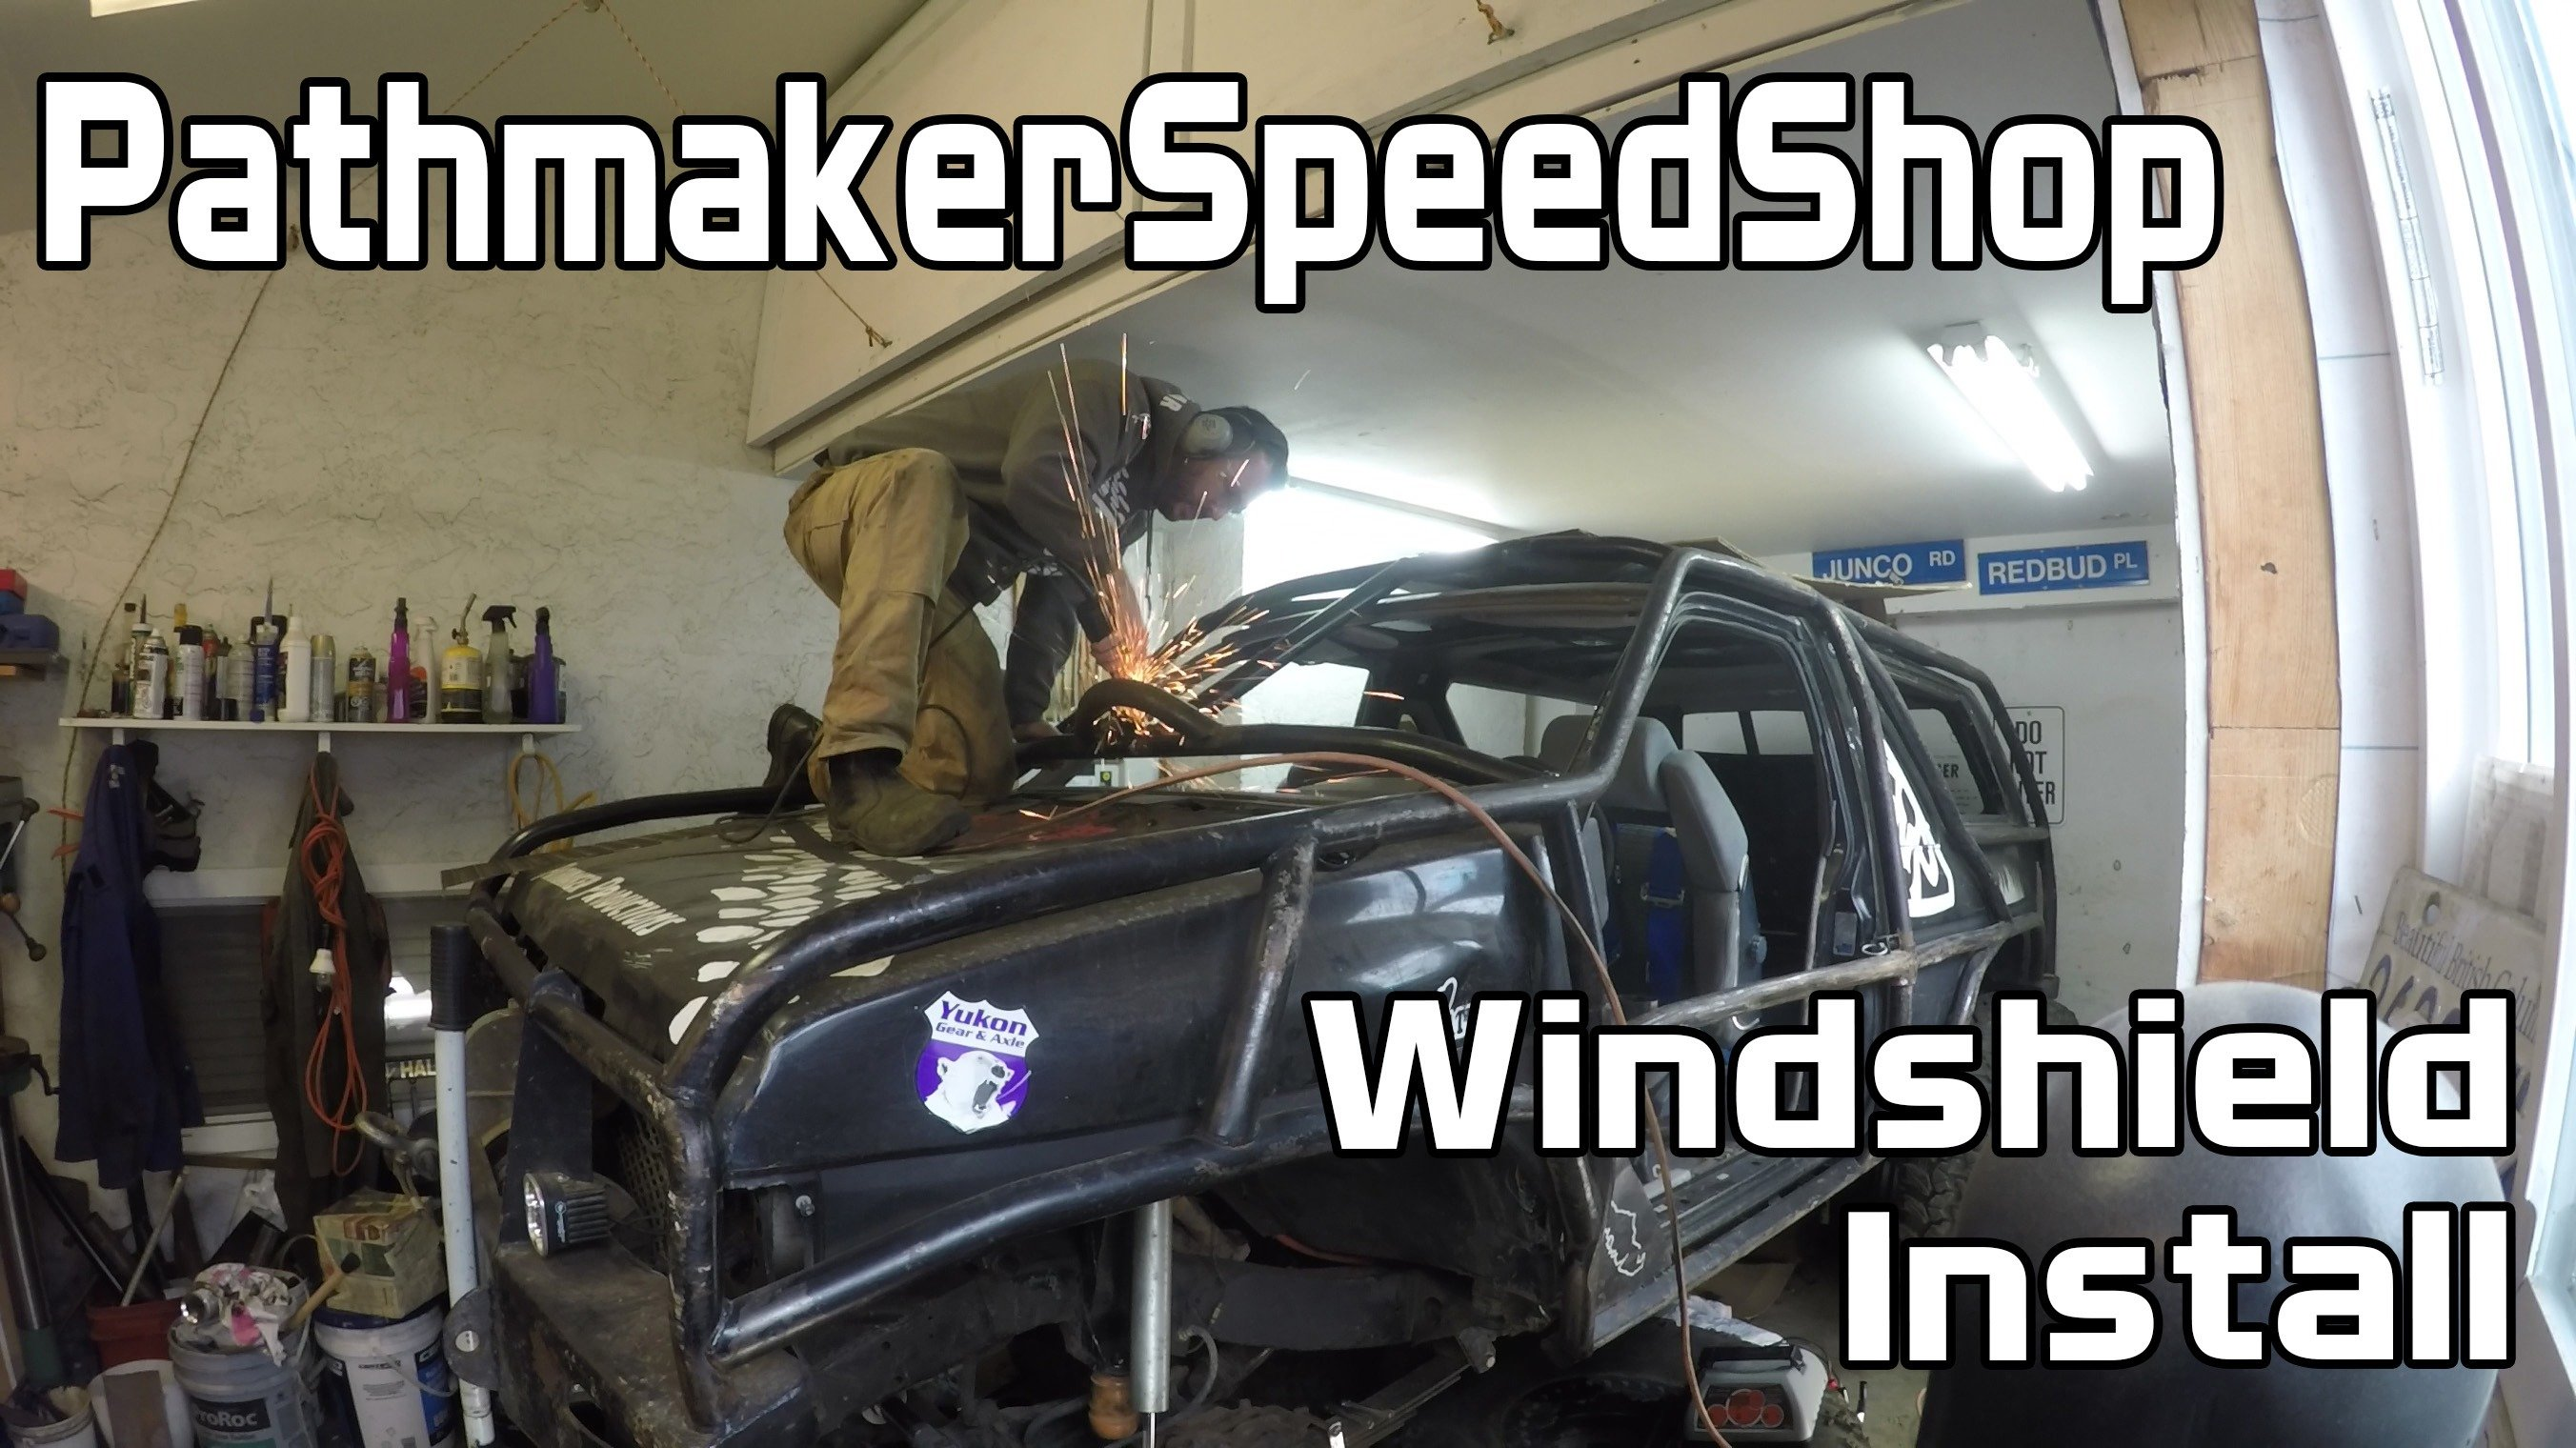 Windshield Install – Pathmaker Speed Shop